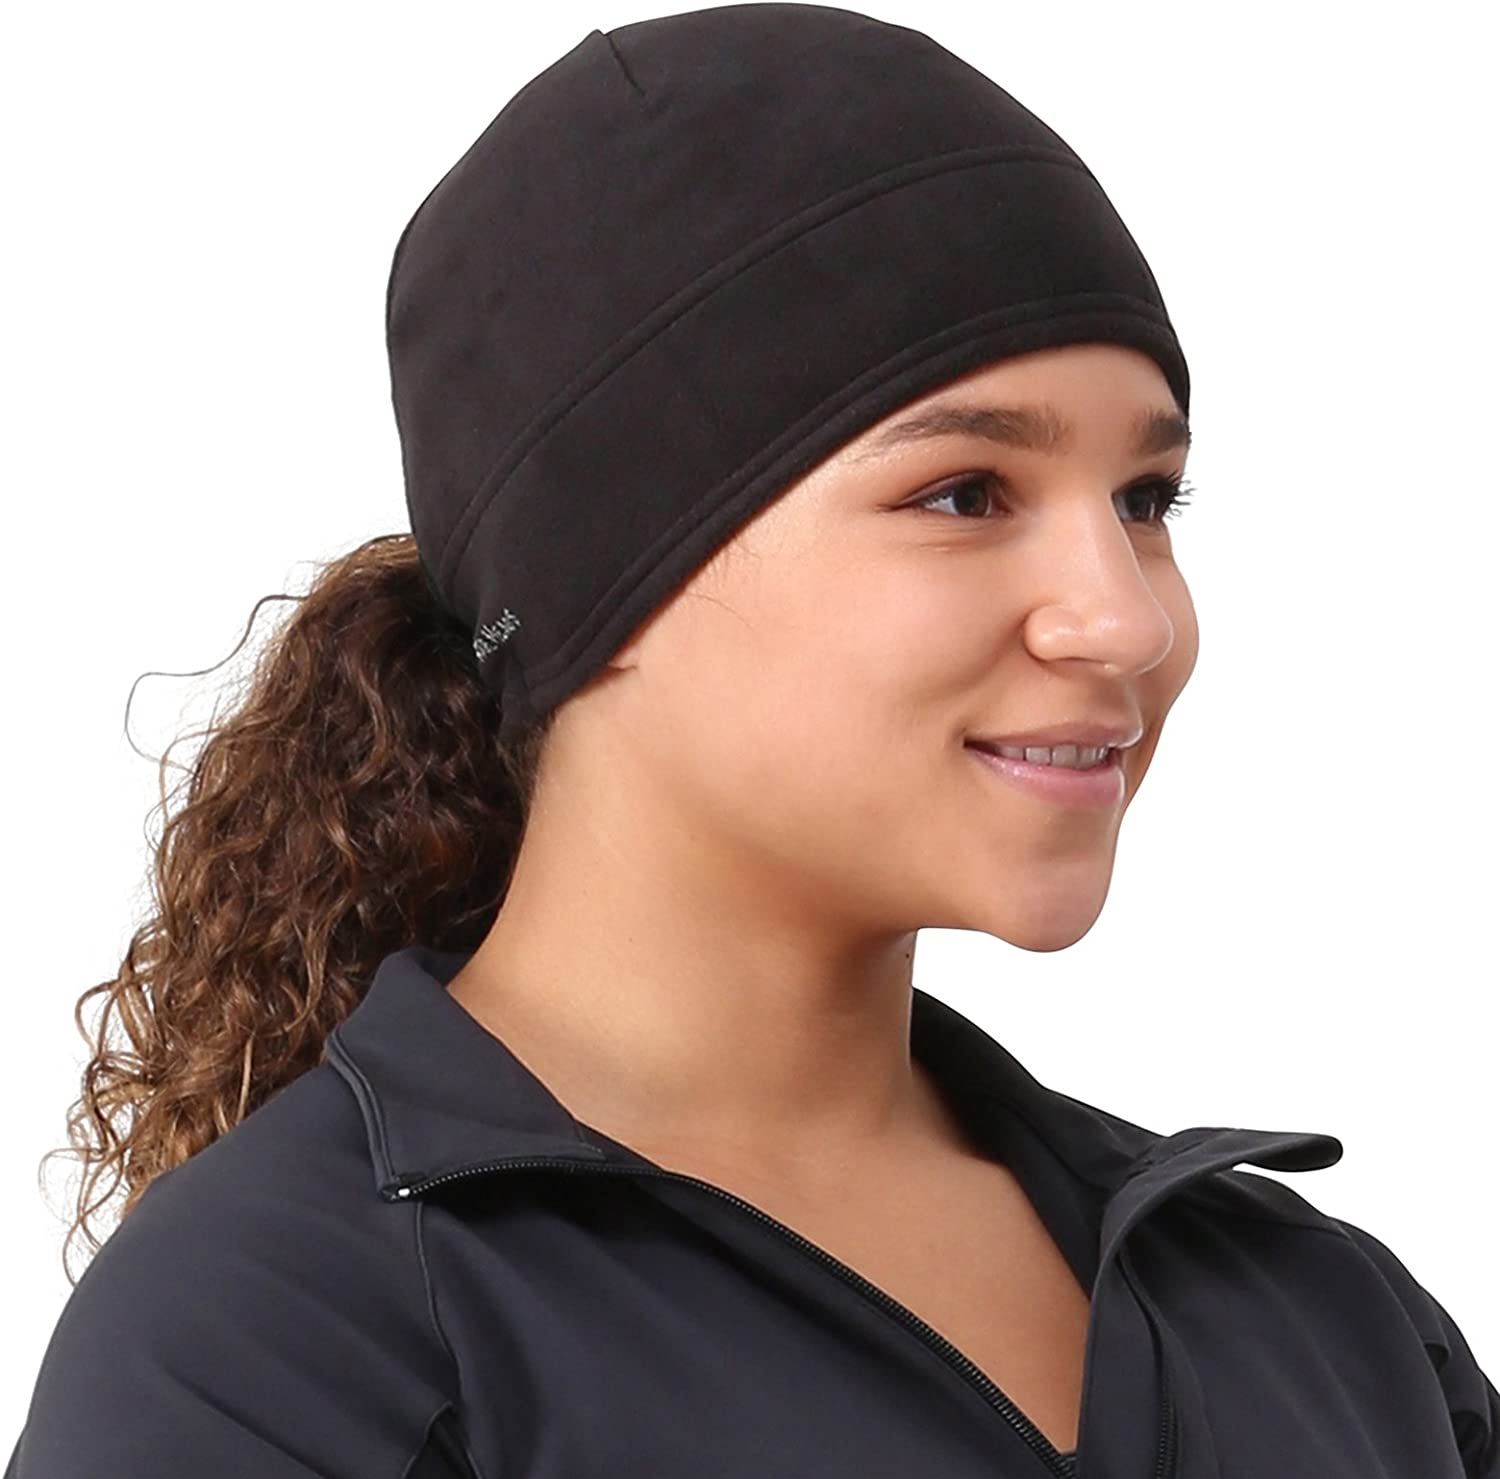 Gifts TrailHeads Tucson Mall Women's Microfleece Ponytail Hat- Colors 2